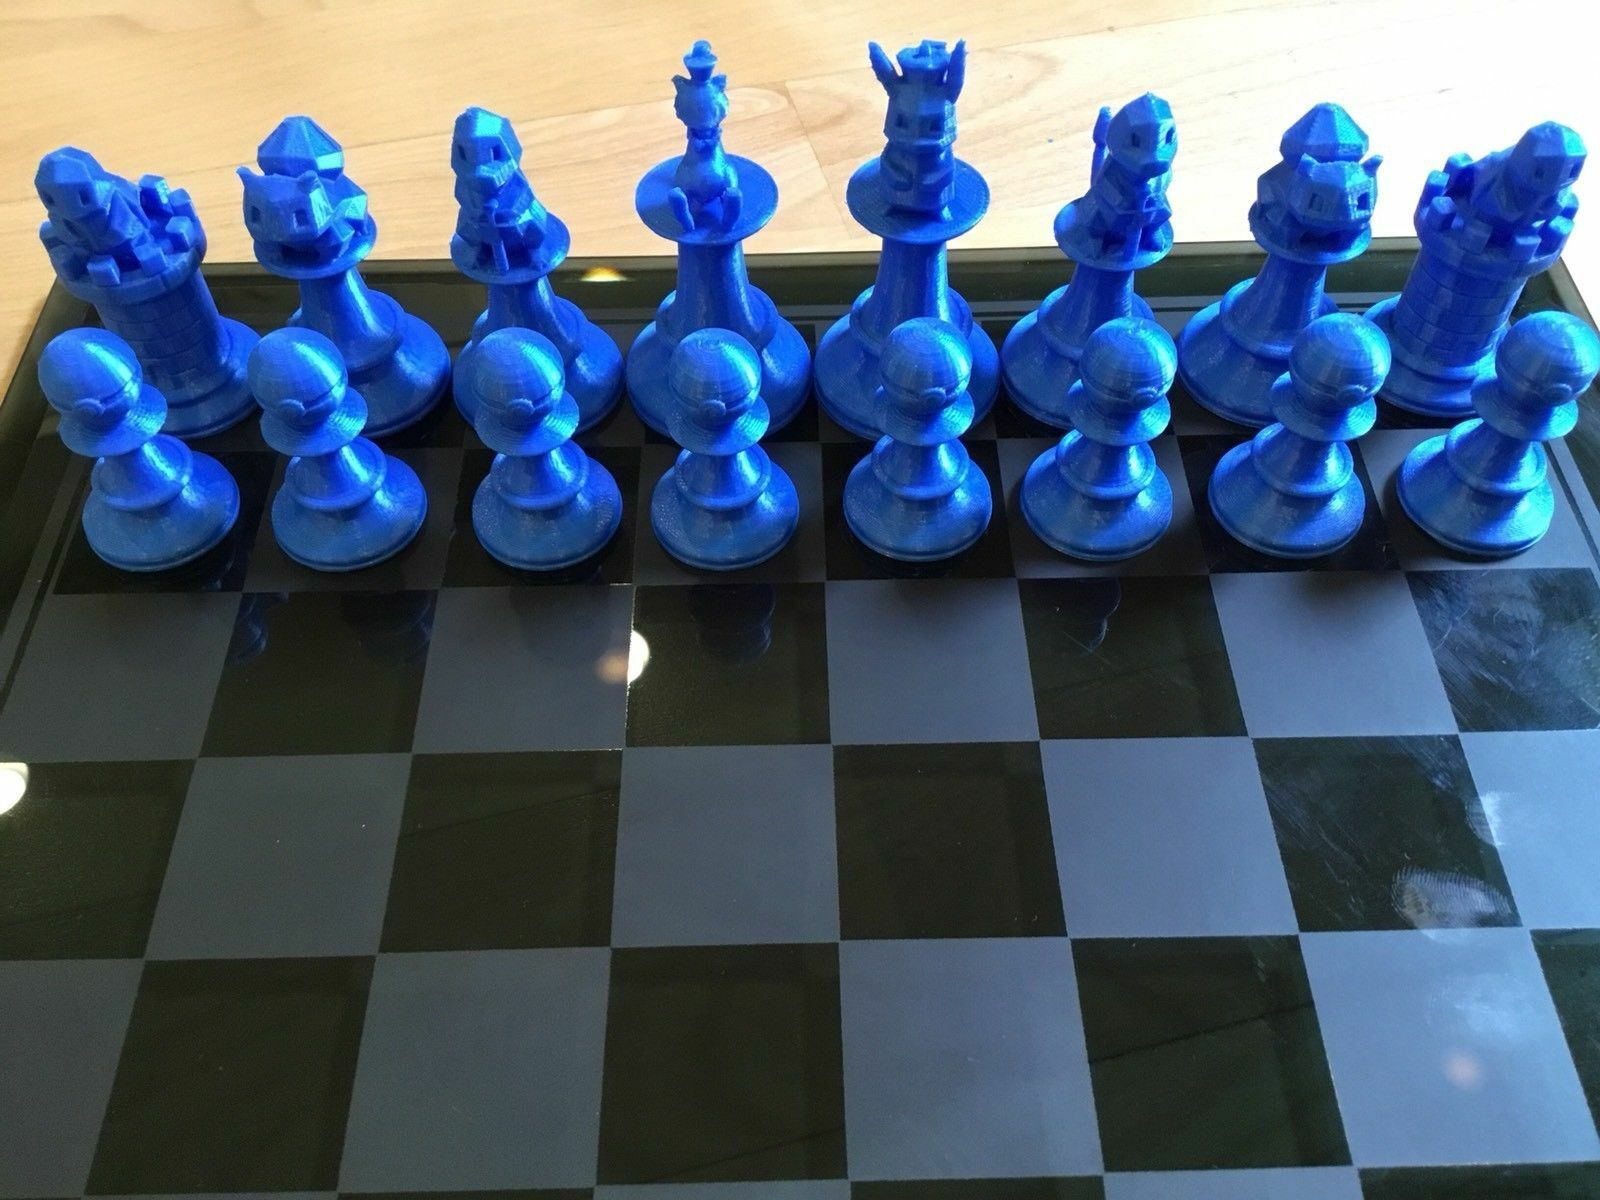 Pokemon Chess Set Squirtle, Pikachu, Mew, Charmander, Charmander, Charmander, Pokeball, Bulbasaur Ver. 1 8120f1